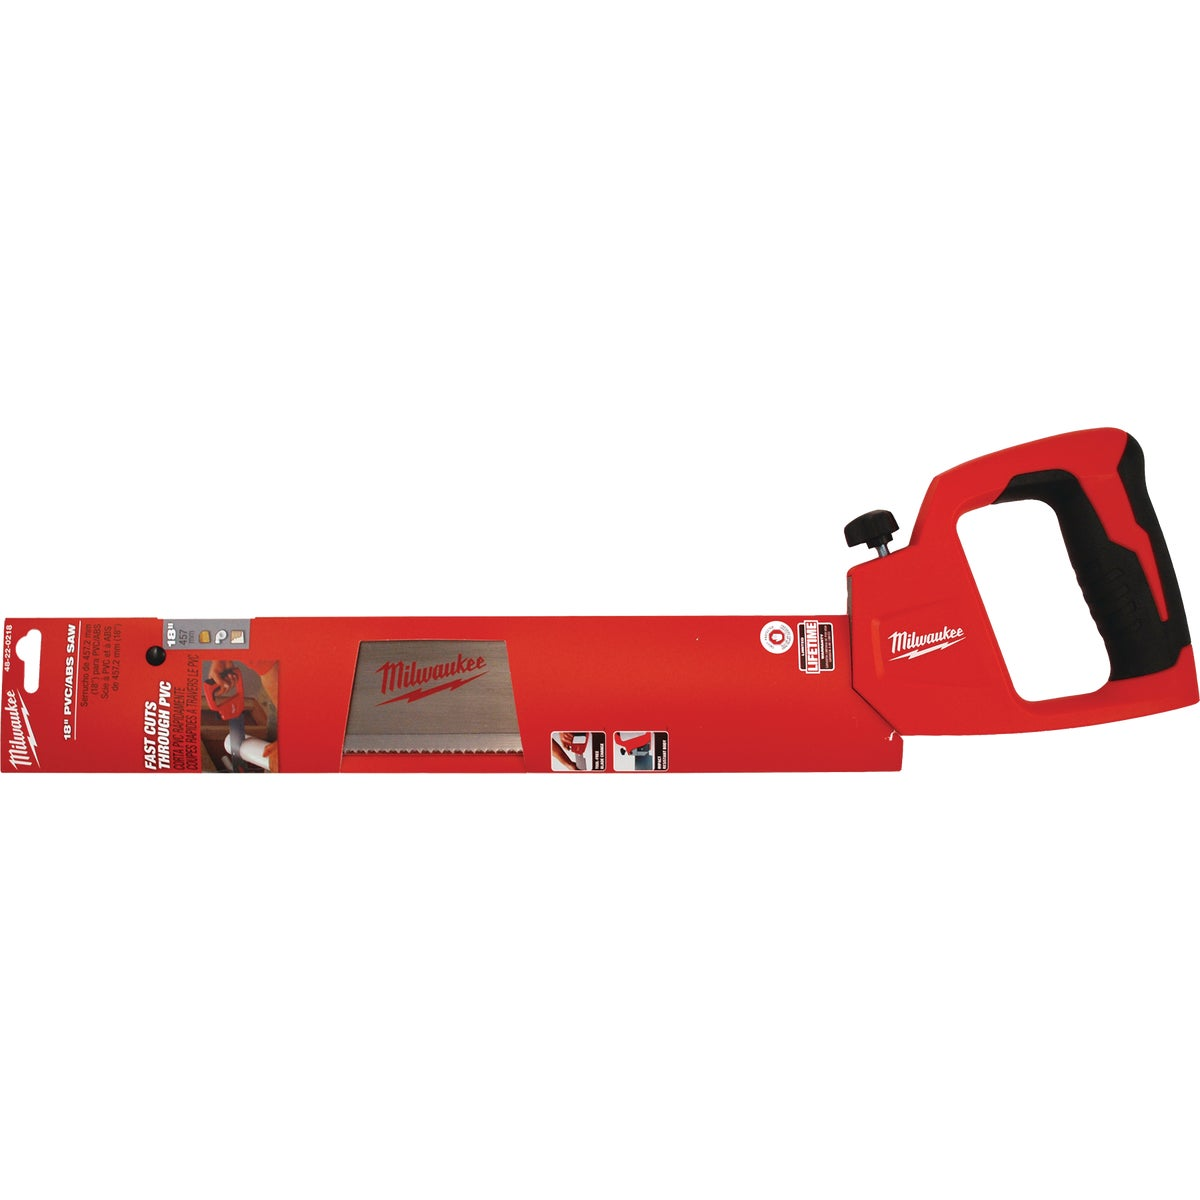 PVC HAND SAW - 48-22-0223 by Milwaukee Elec Tool